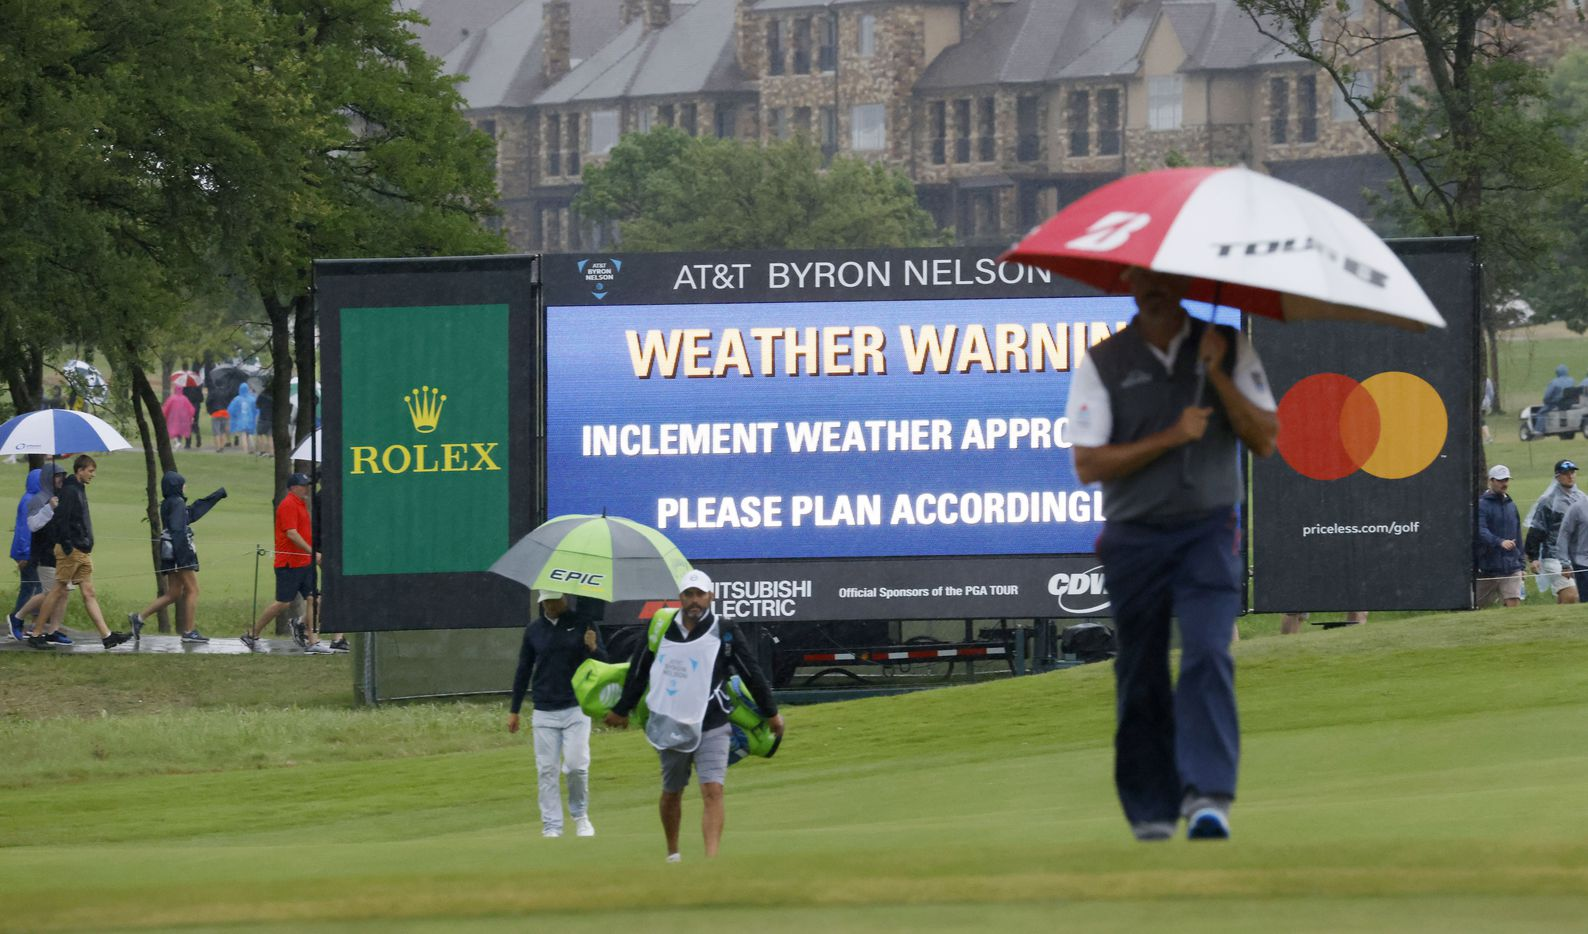 Matt Kuchar walks up to the green in the rain on the 9th hole during round 4 of the AT&T Byron Nelson  at TPC Craig Ranch on Saturday, May 16, 2021 in McKinney, Texas. (Vernon Bryant/The Dallas Morning News)